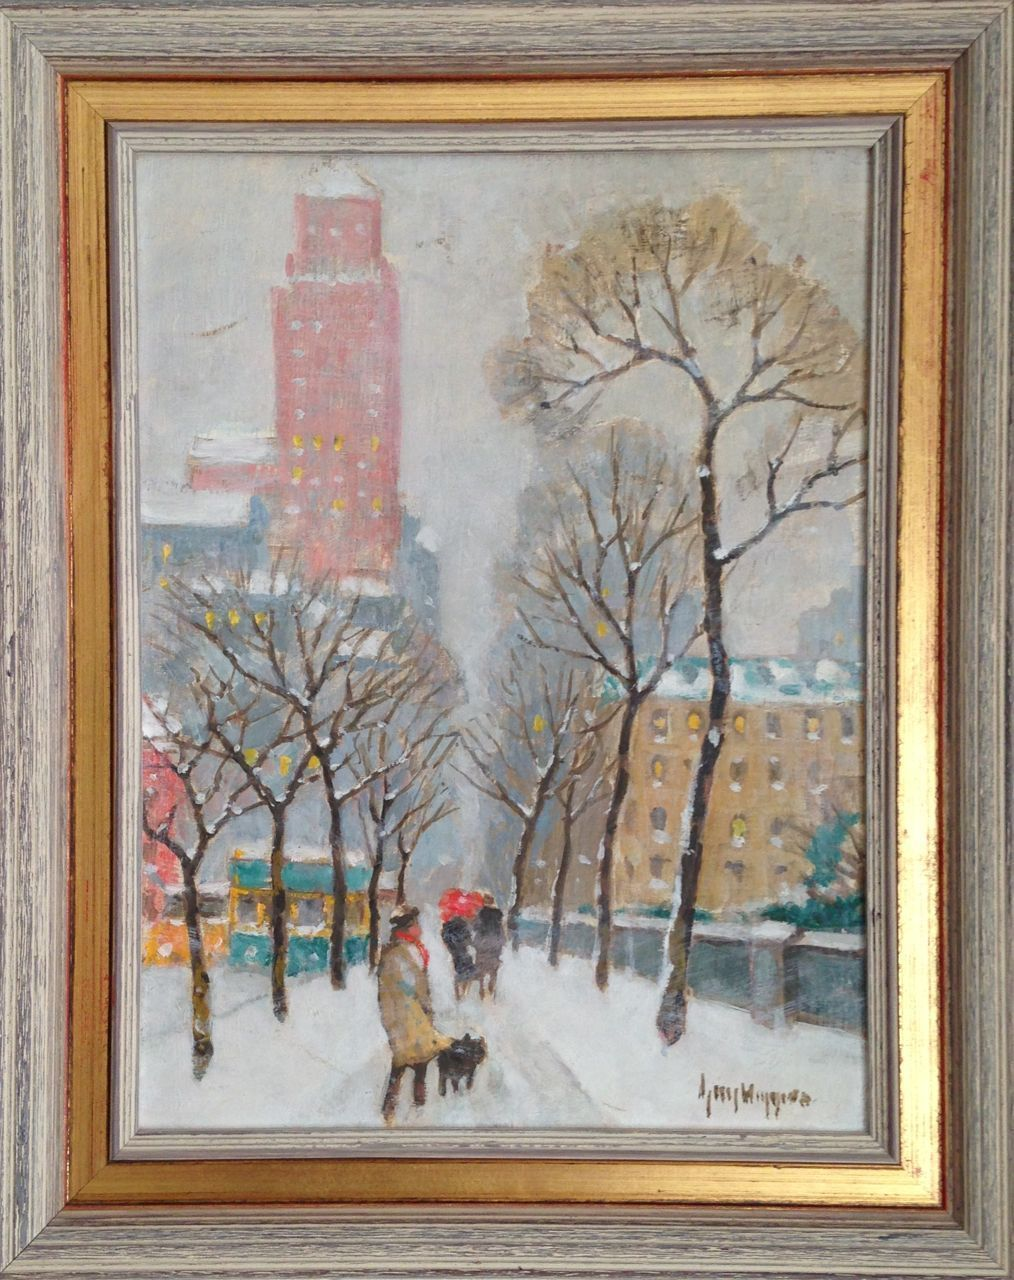 new york city snowy street 12 x 16 in period frame